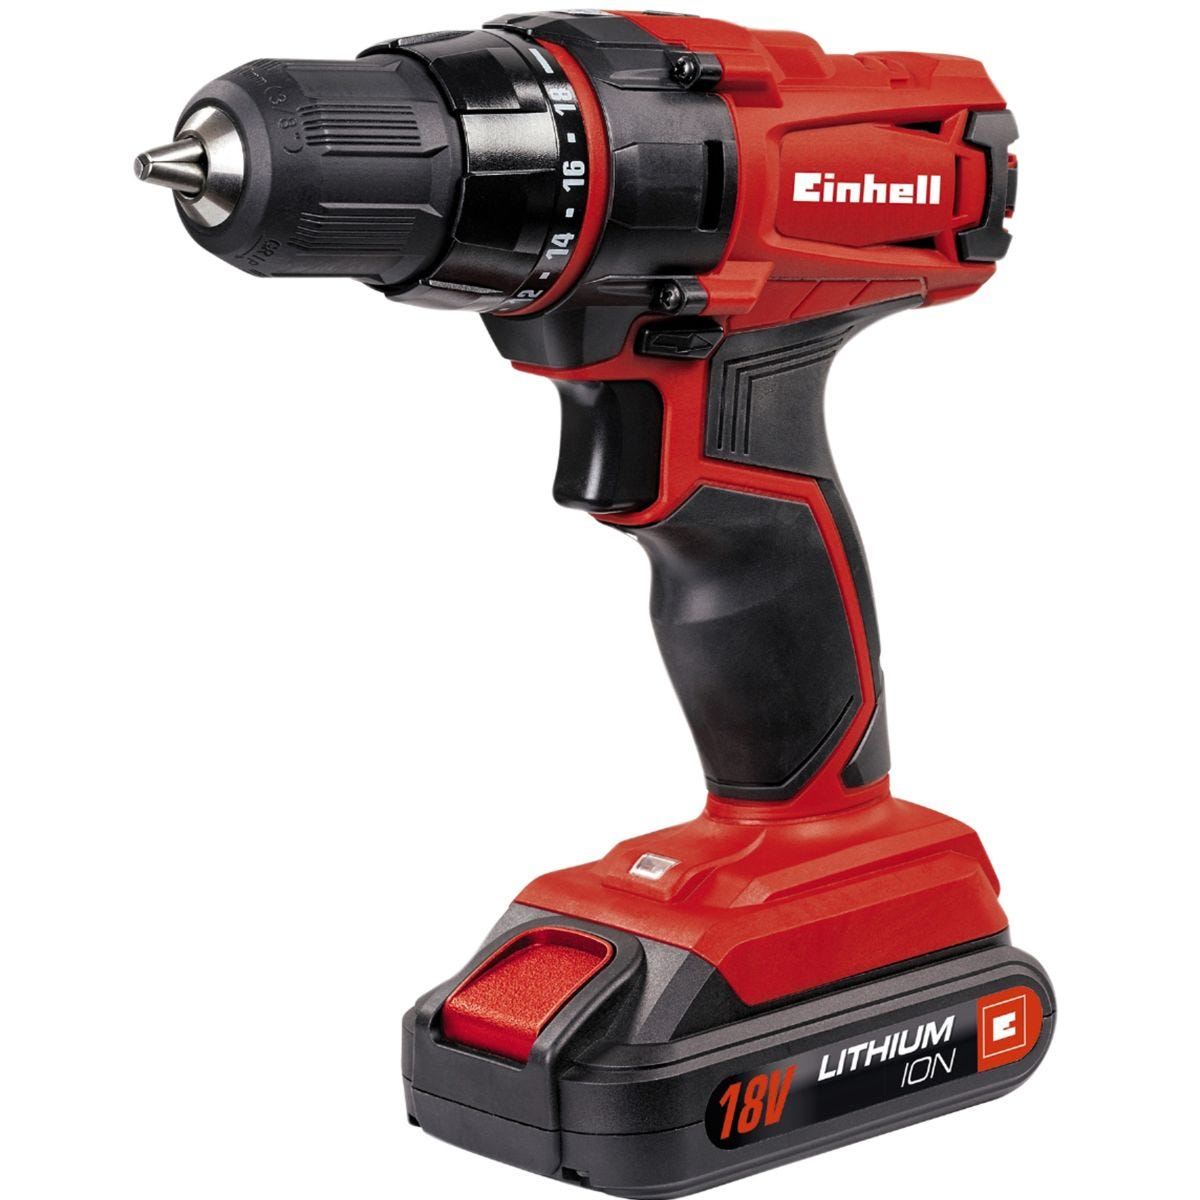 Einhell 18V Cordless Drill/Driver with 1.5AH Li-Ion Battery